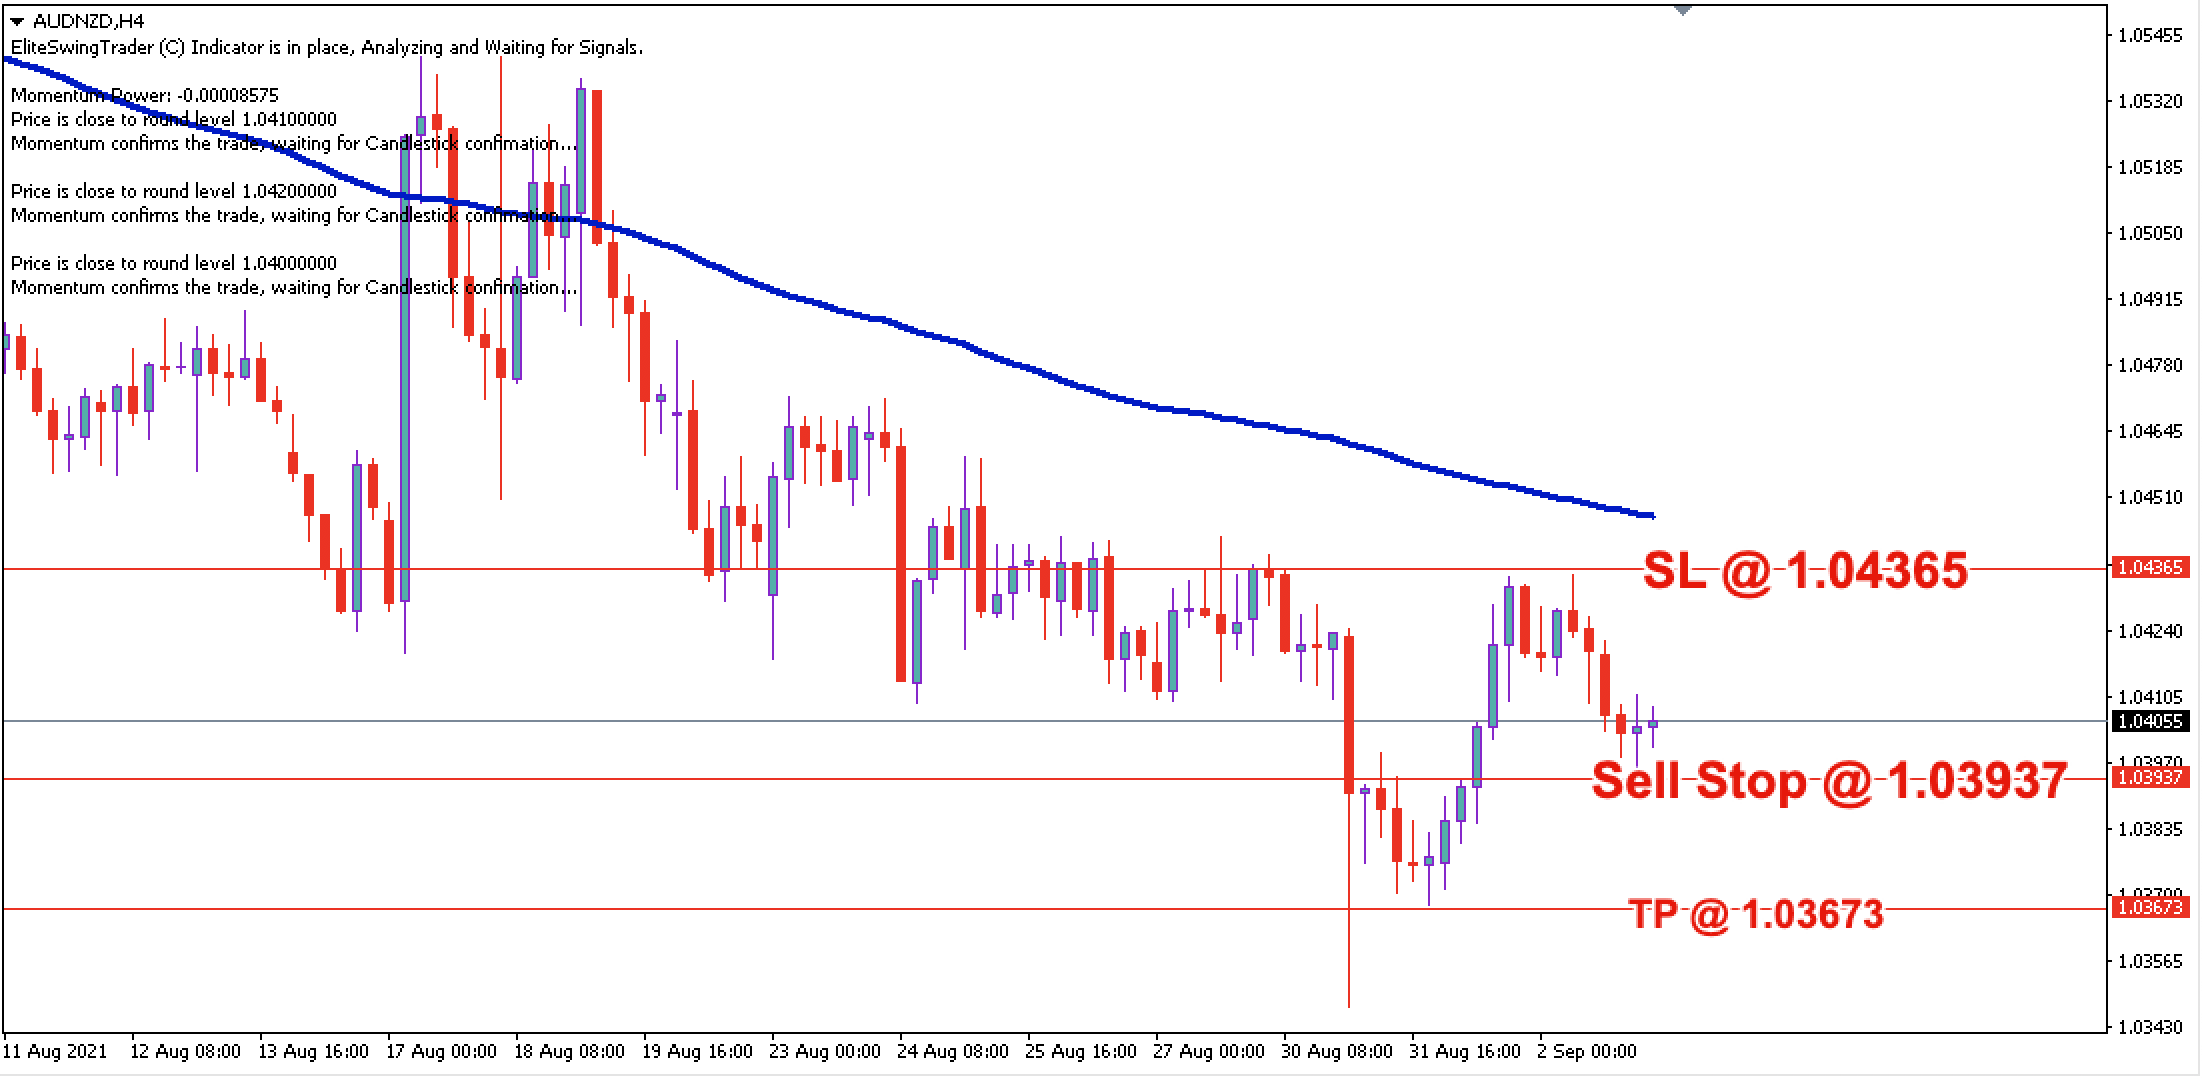 AUD/NZD Daily Price Forecast – 3rd Sept 2021